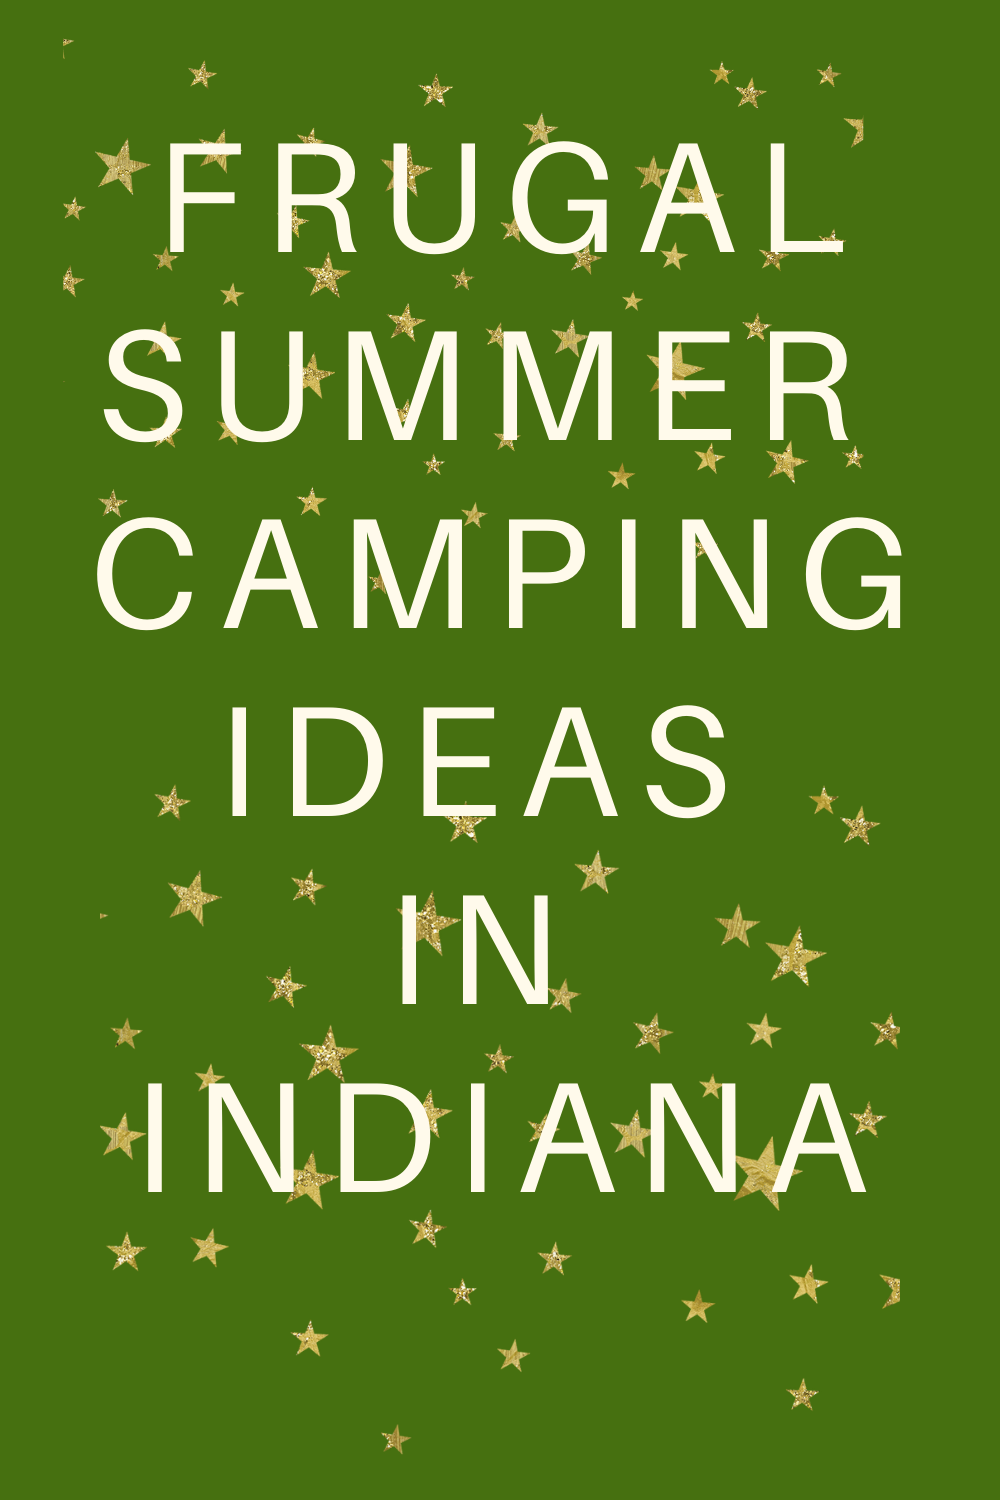 Frugal Summer Camping Ideas in Indiana